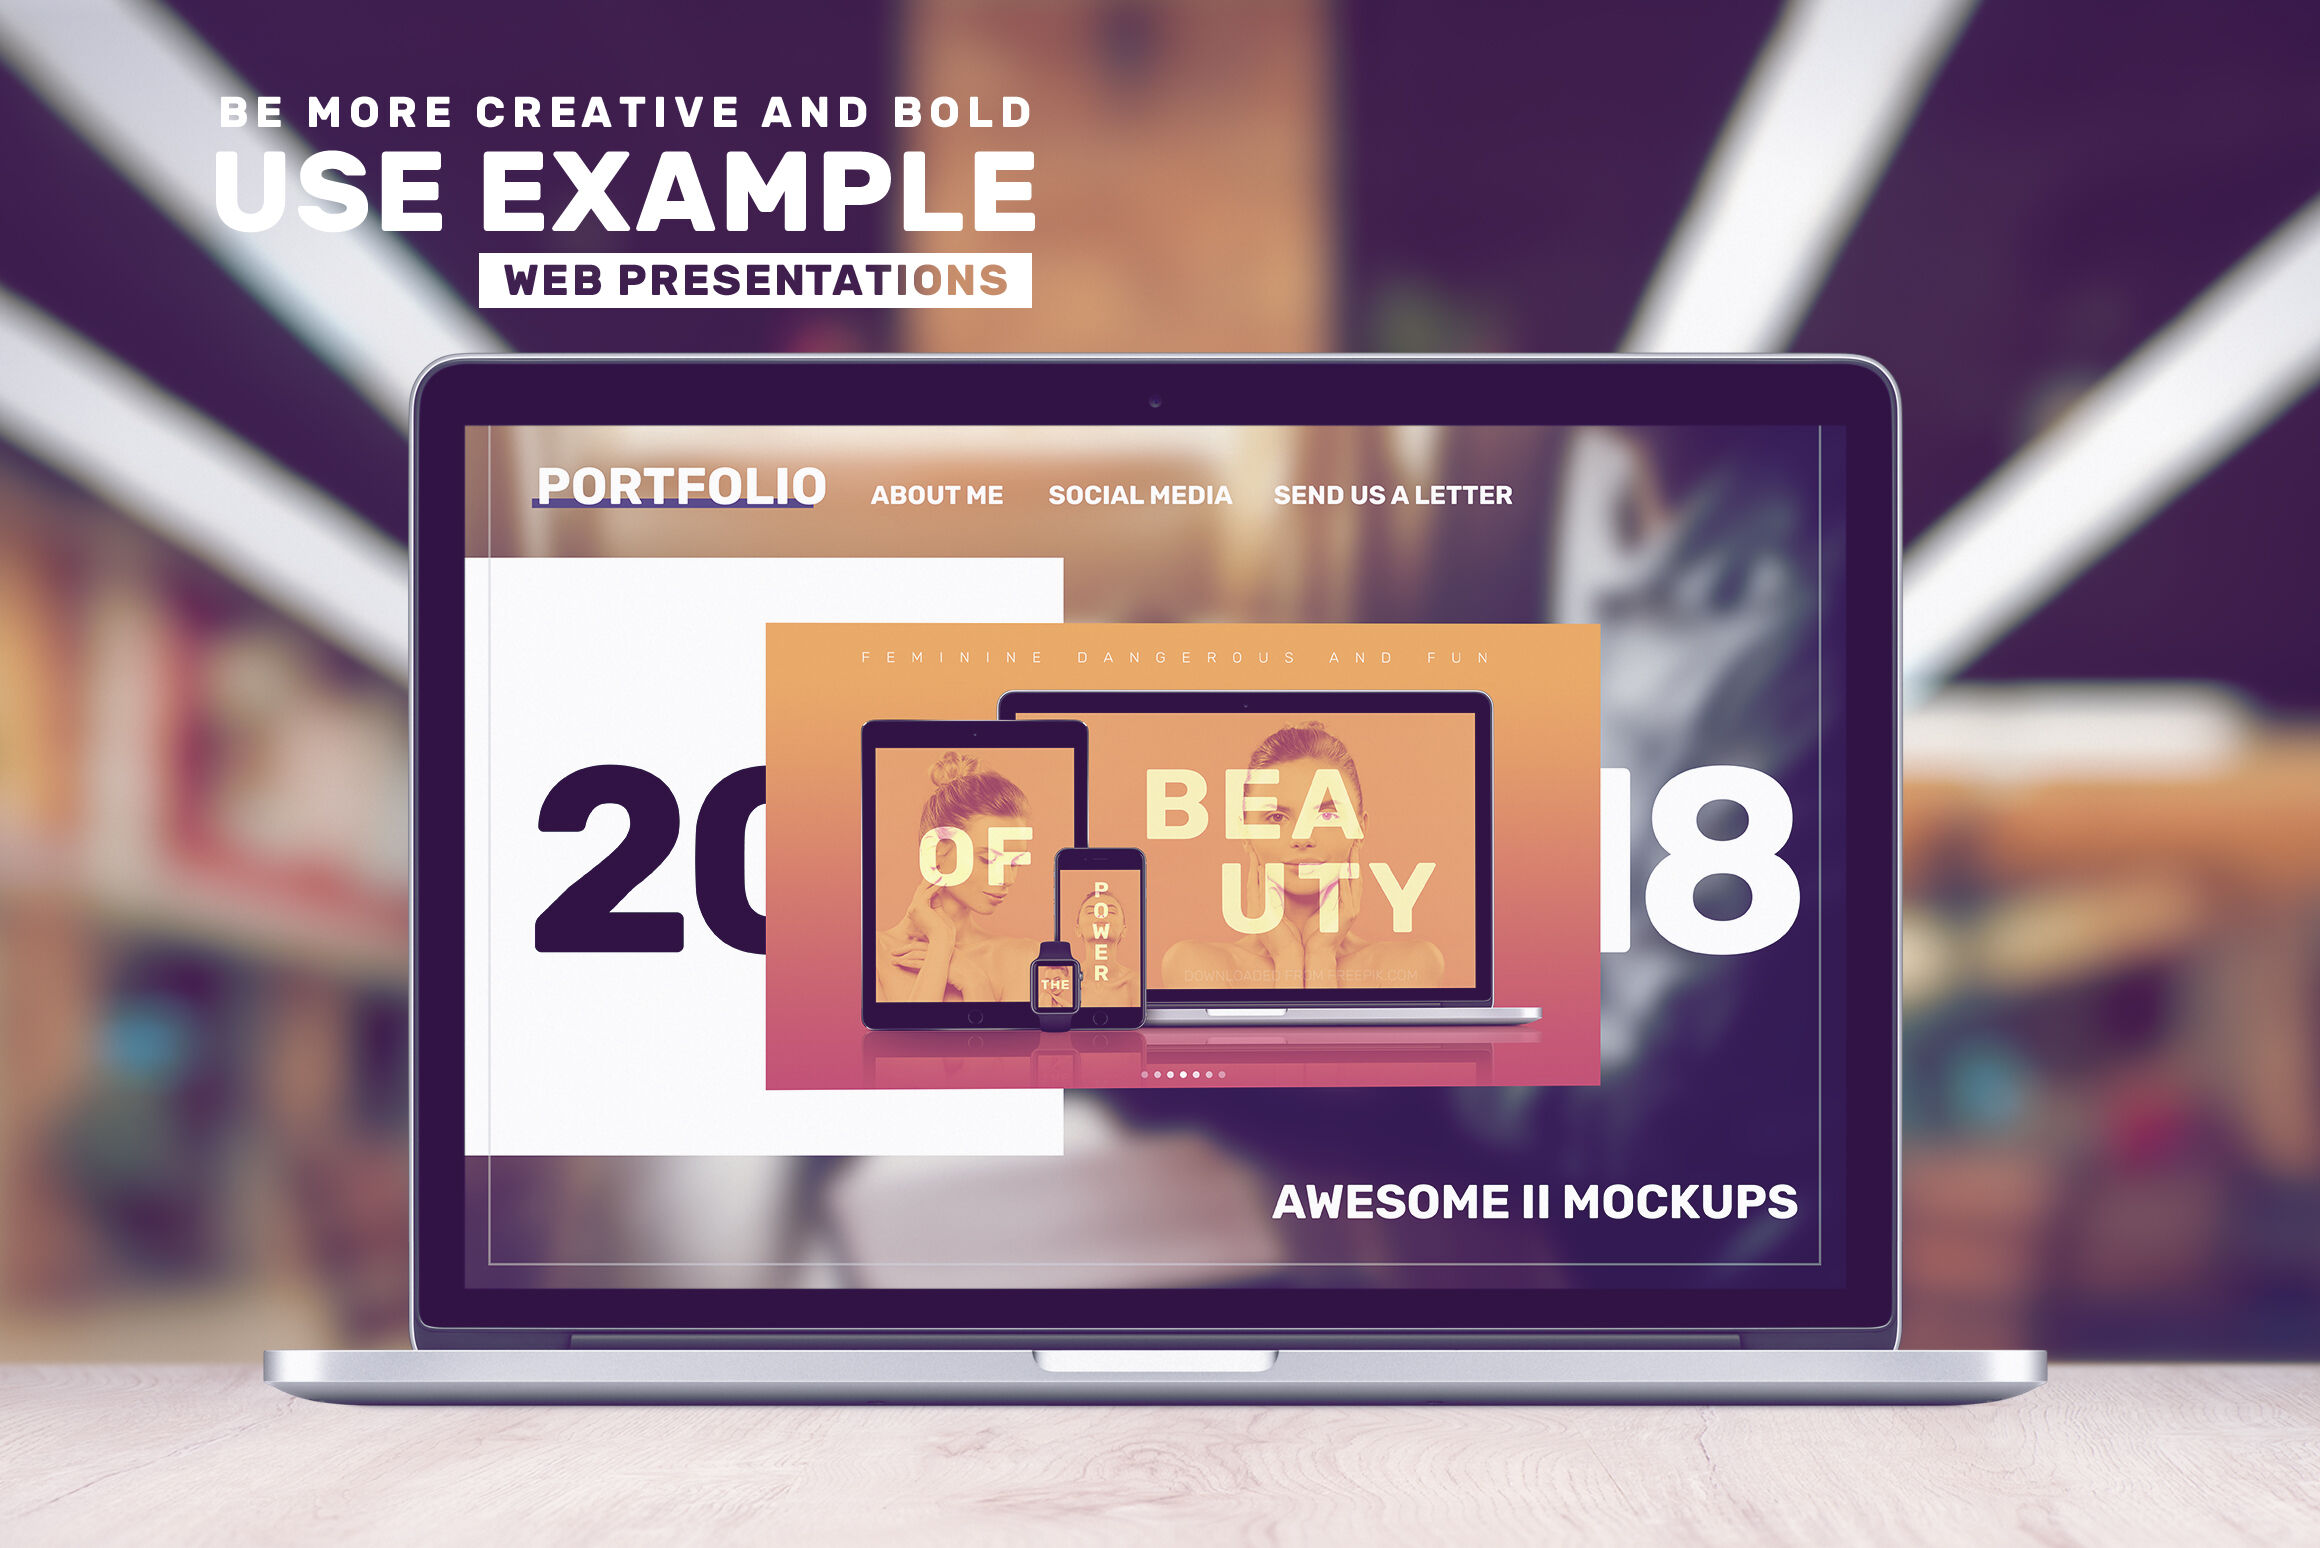 Download Macbook Mockup Psd Free Yellowimages